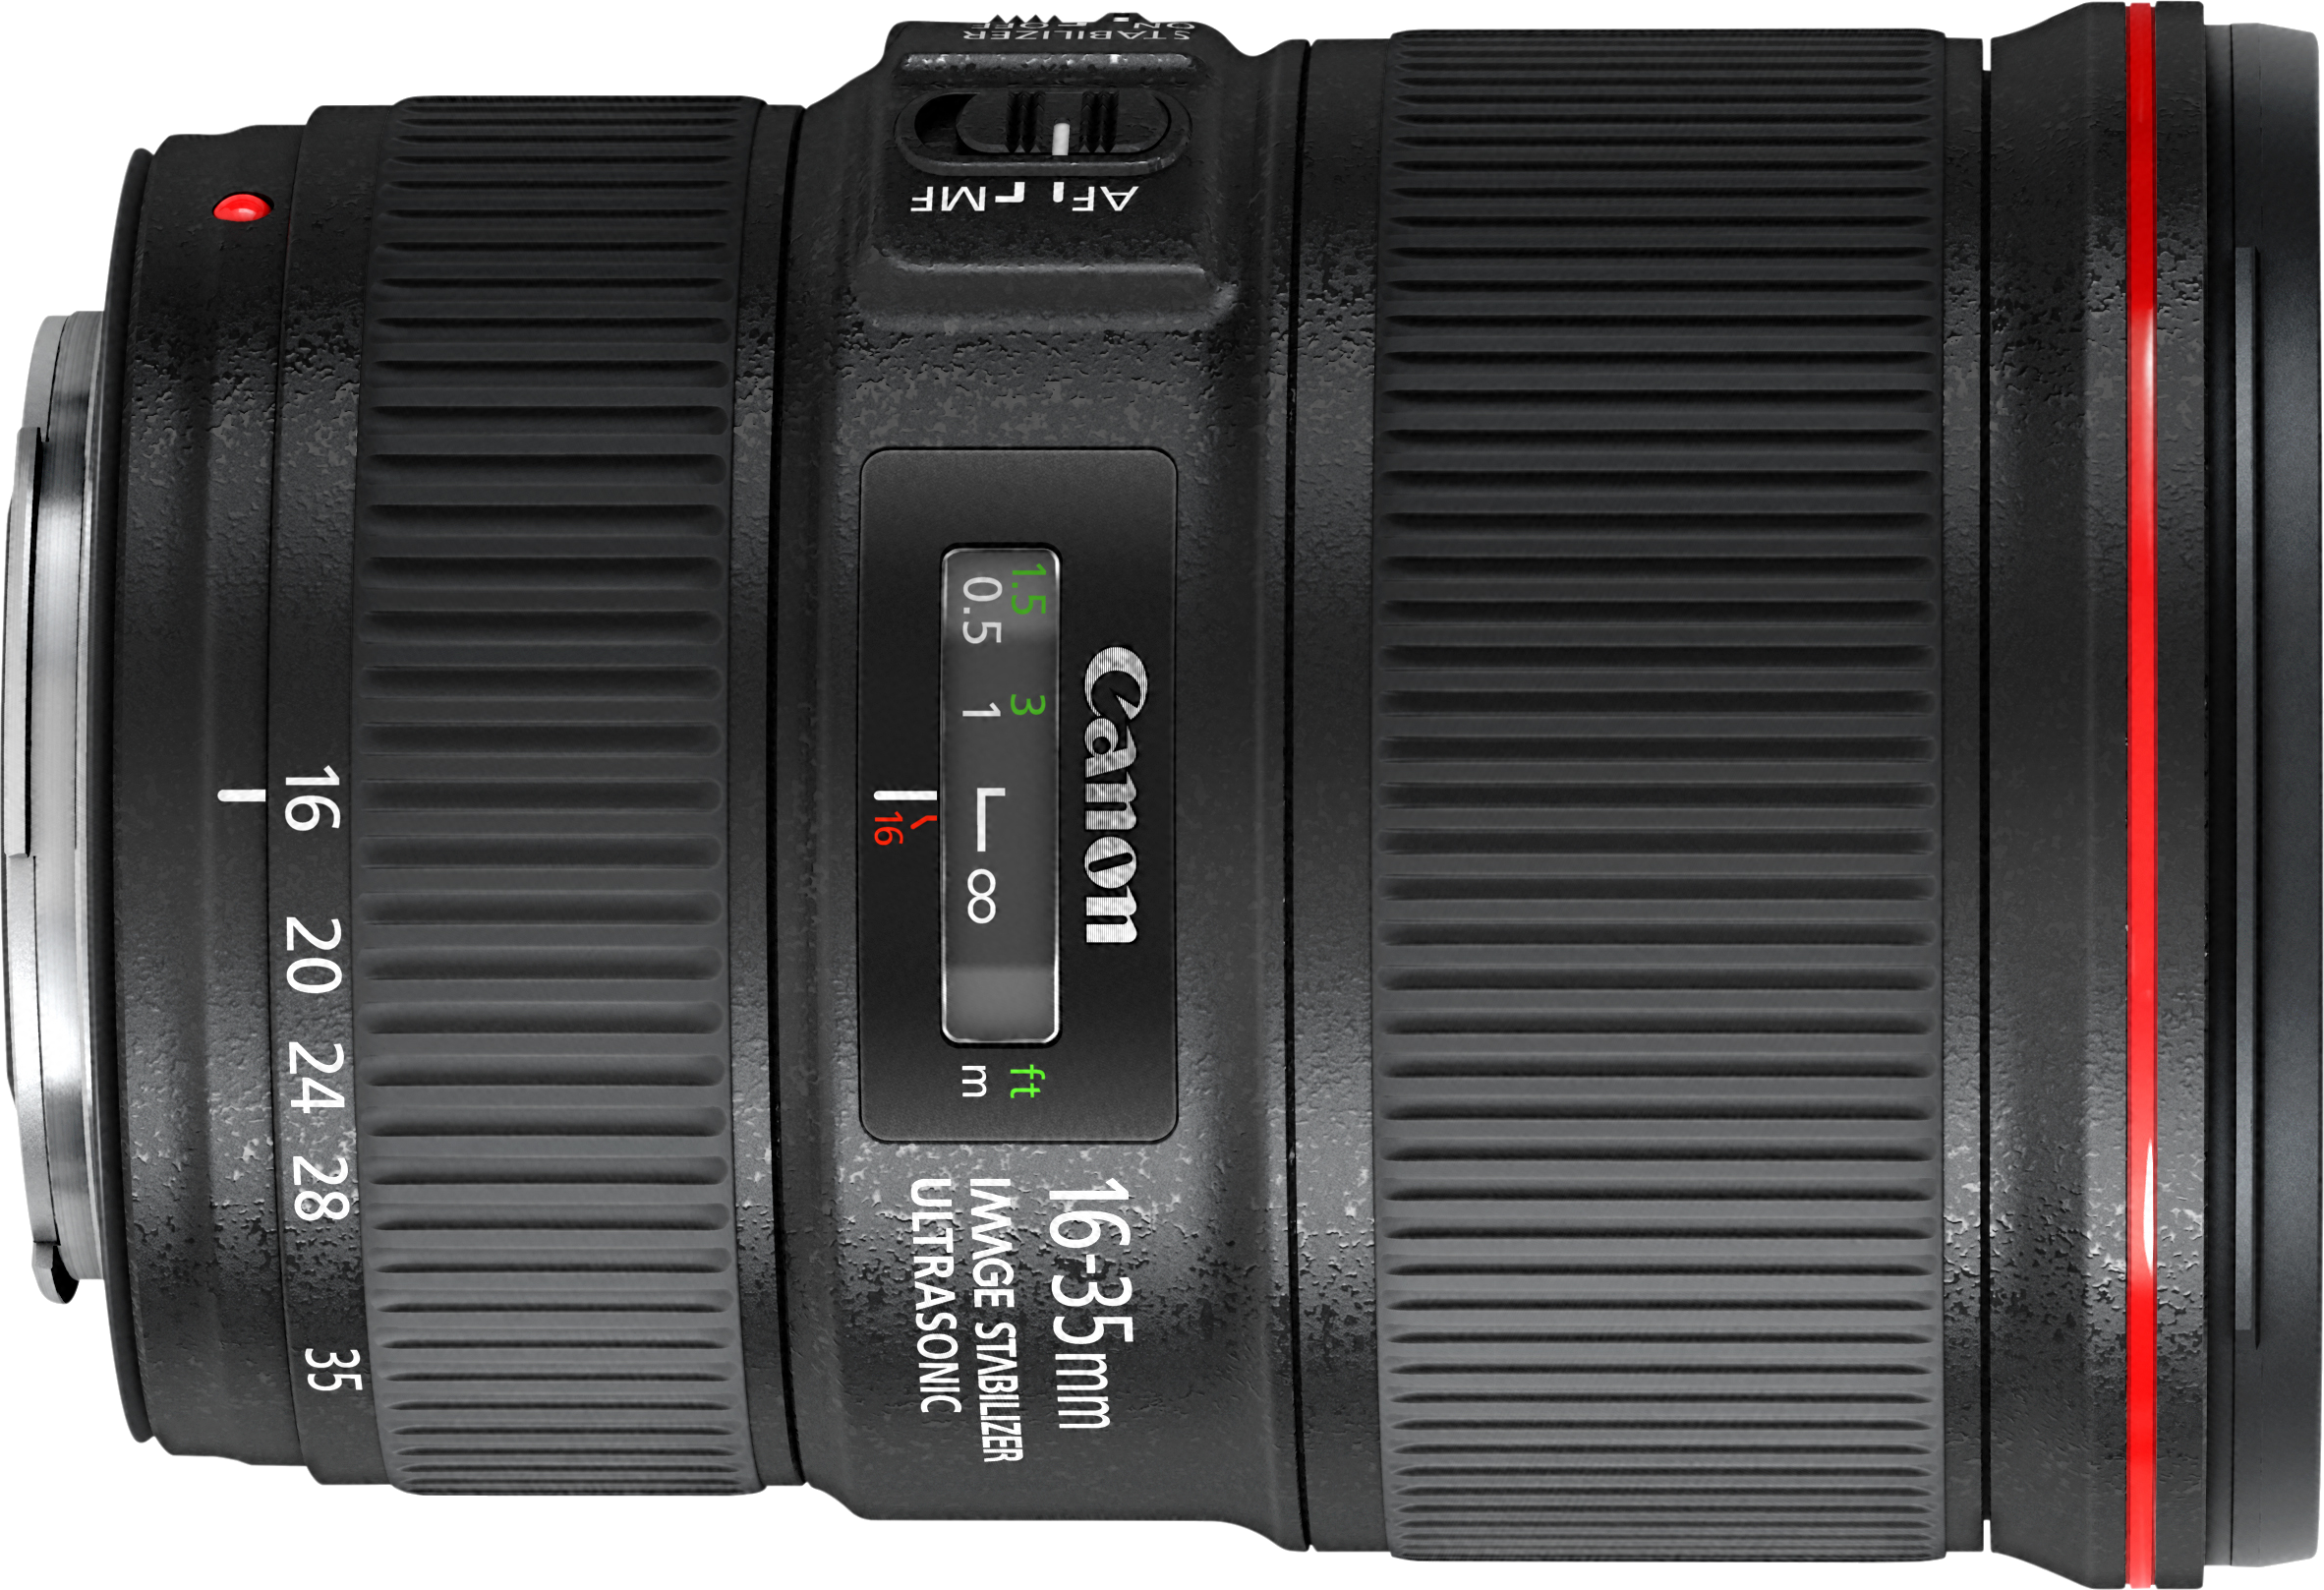 Wide angle f/4 zoom with up to 4 stops of image stabilization